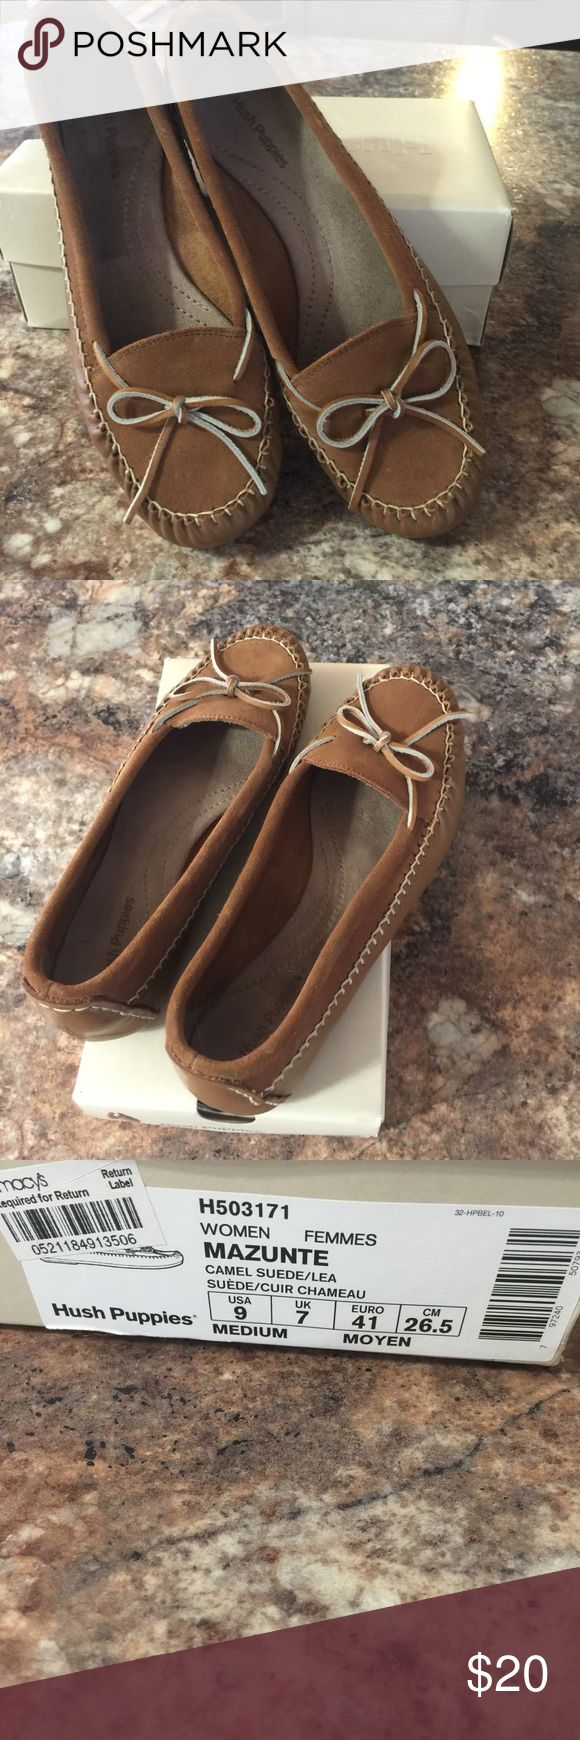 Hush puppies Never worn, hush puppies, size 9. So cute and cozy.nwot Hush Puppies Shoes Slippers